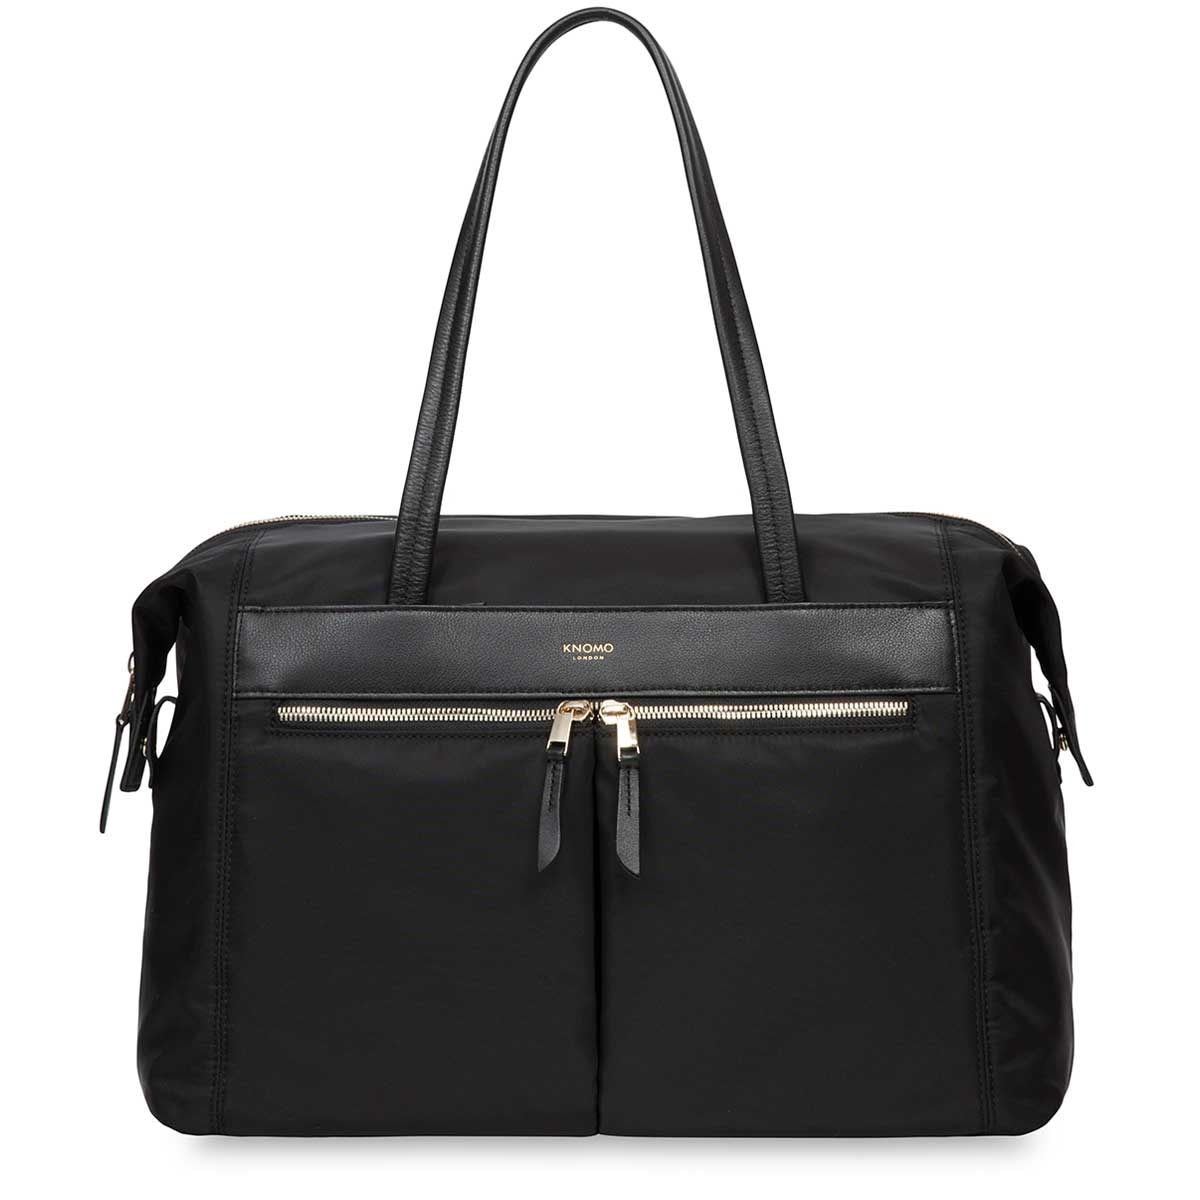 Laptoptas Knomo Curzon Shoulder Tote Black 15 inch